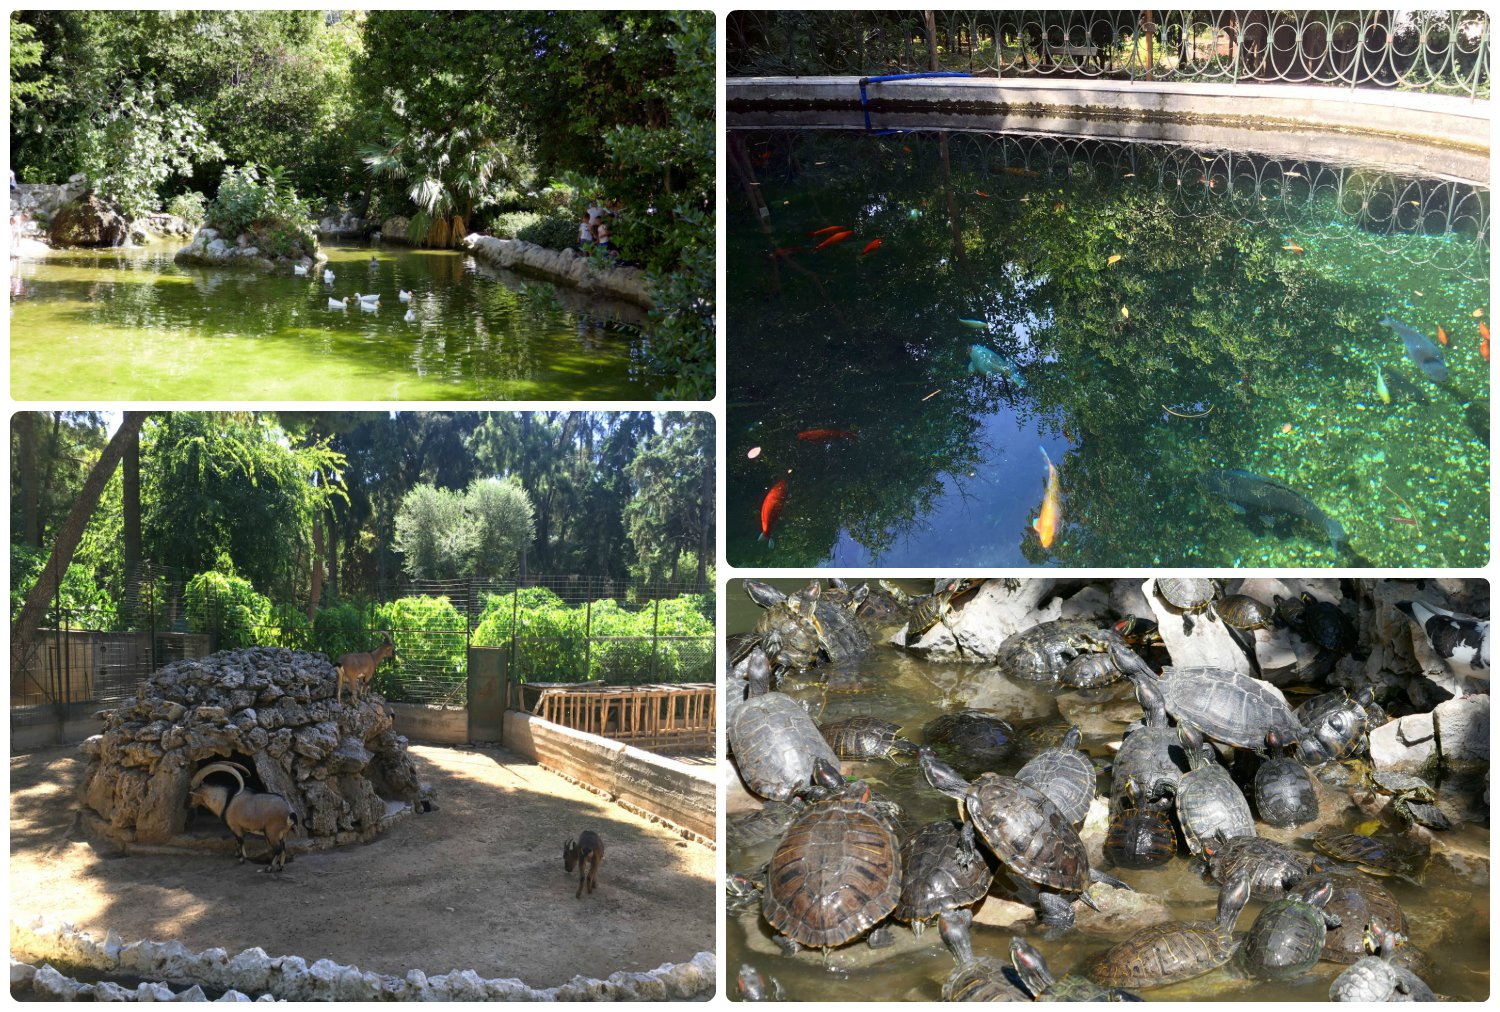 We were surprised to find a variety of animals, from turtles and Koi fish in the ponds to a micro zoo in the middle of the National Garden!